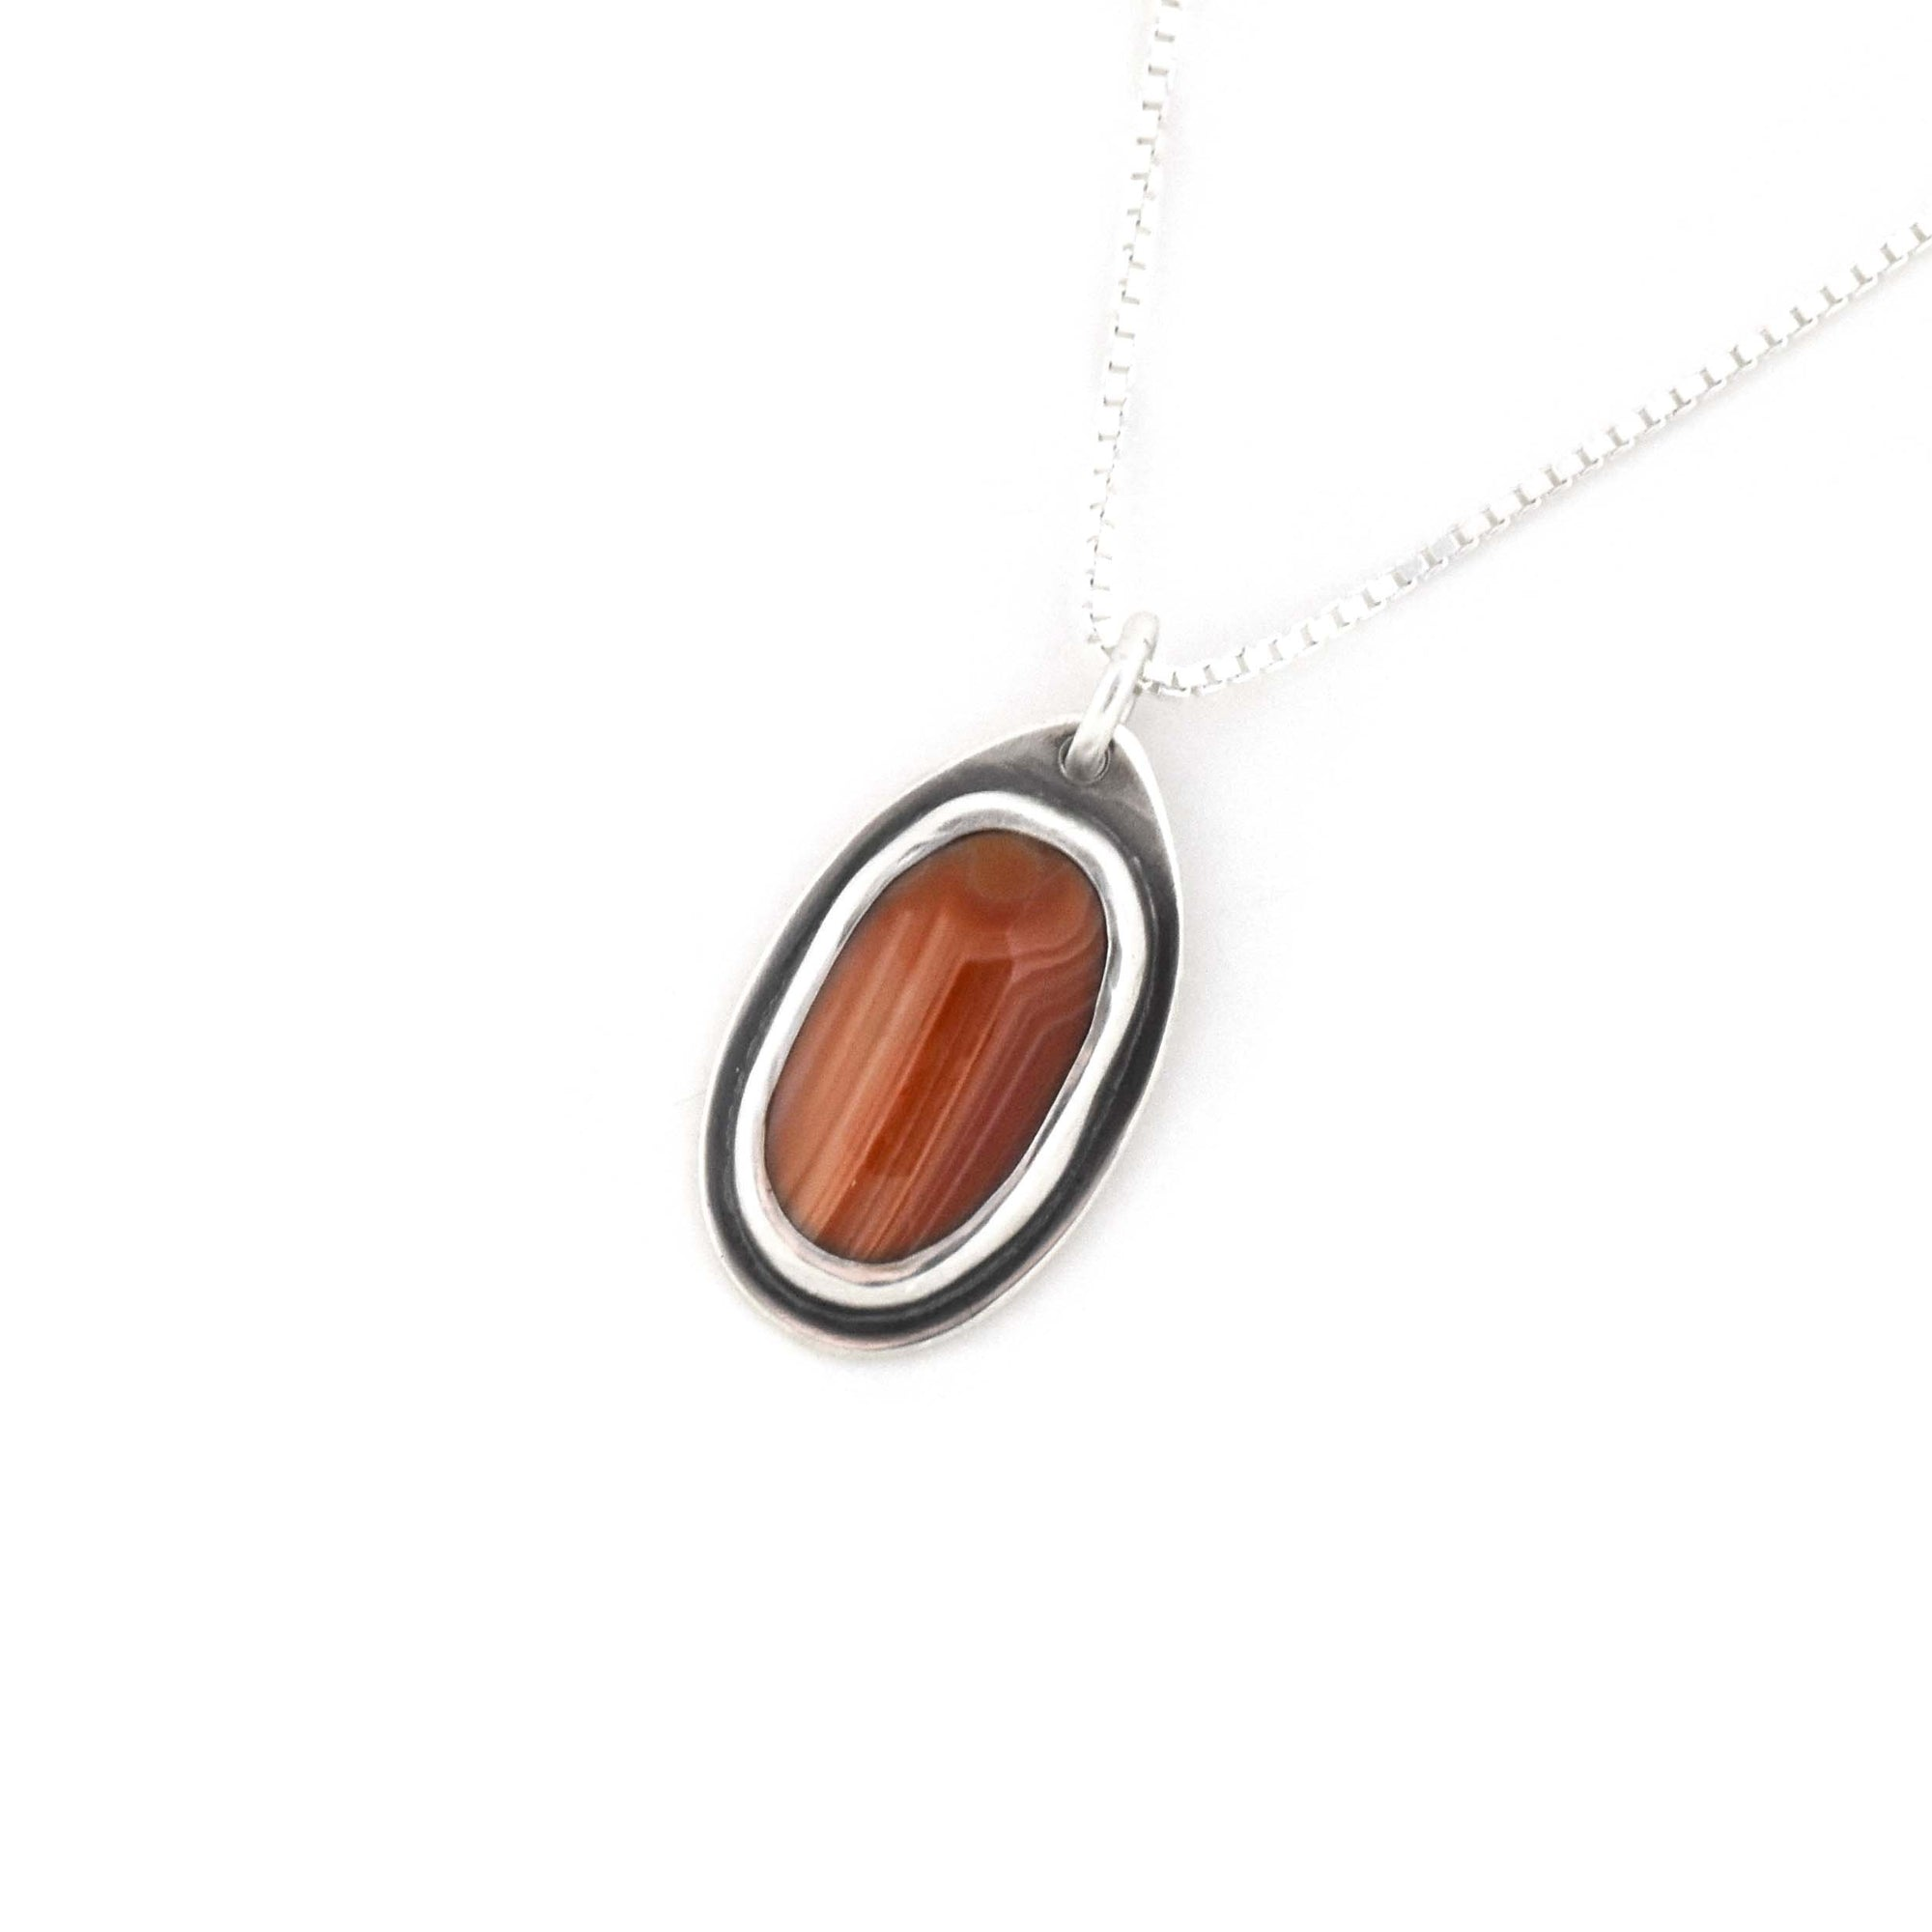 Lake Superior Agate Drop Pendant No. 11, Silver Pendant handmade by Beth Millner Jewelry